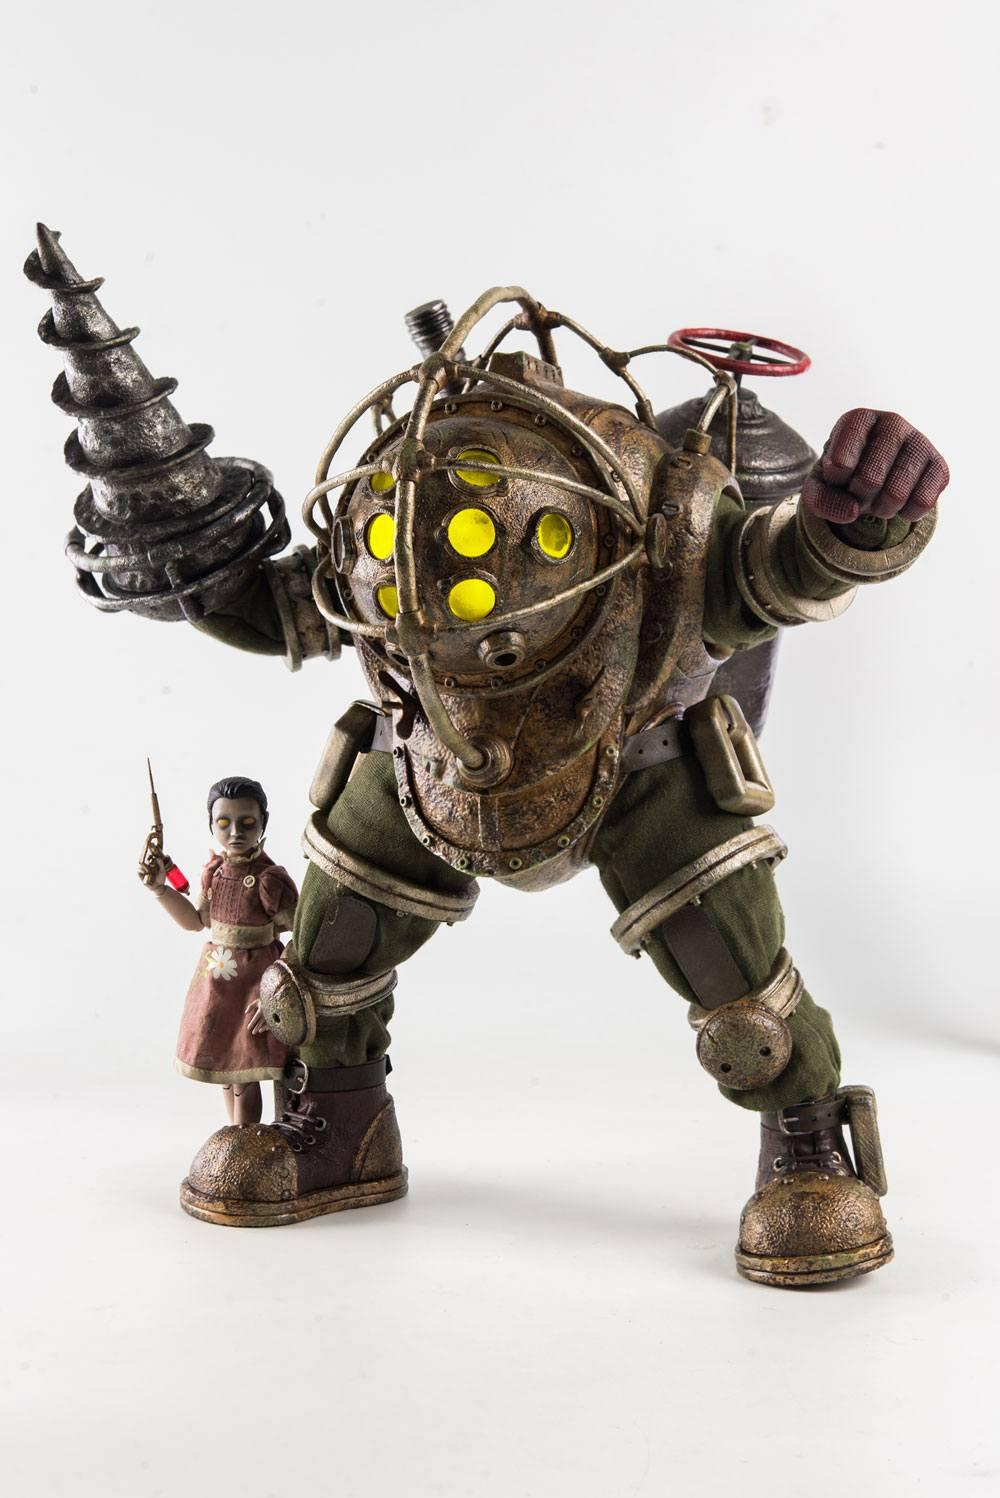 BIOSHOCK - Big Daddy and Little Sister 1/6 Scale Figures - 32cm